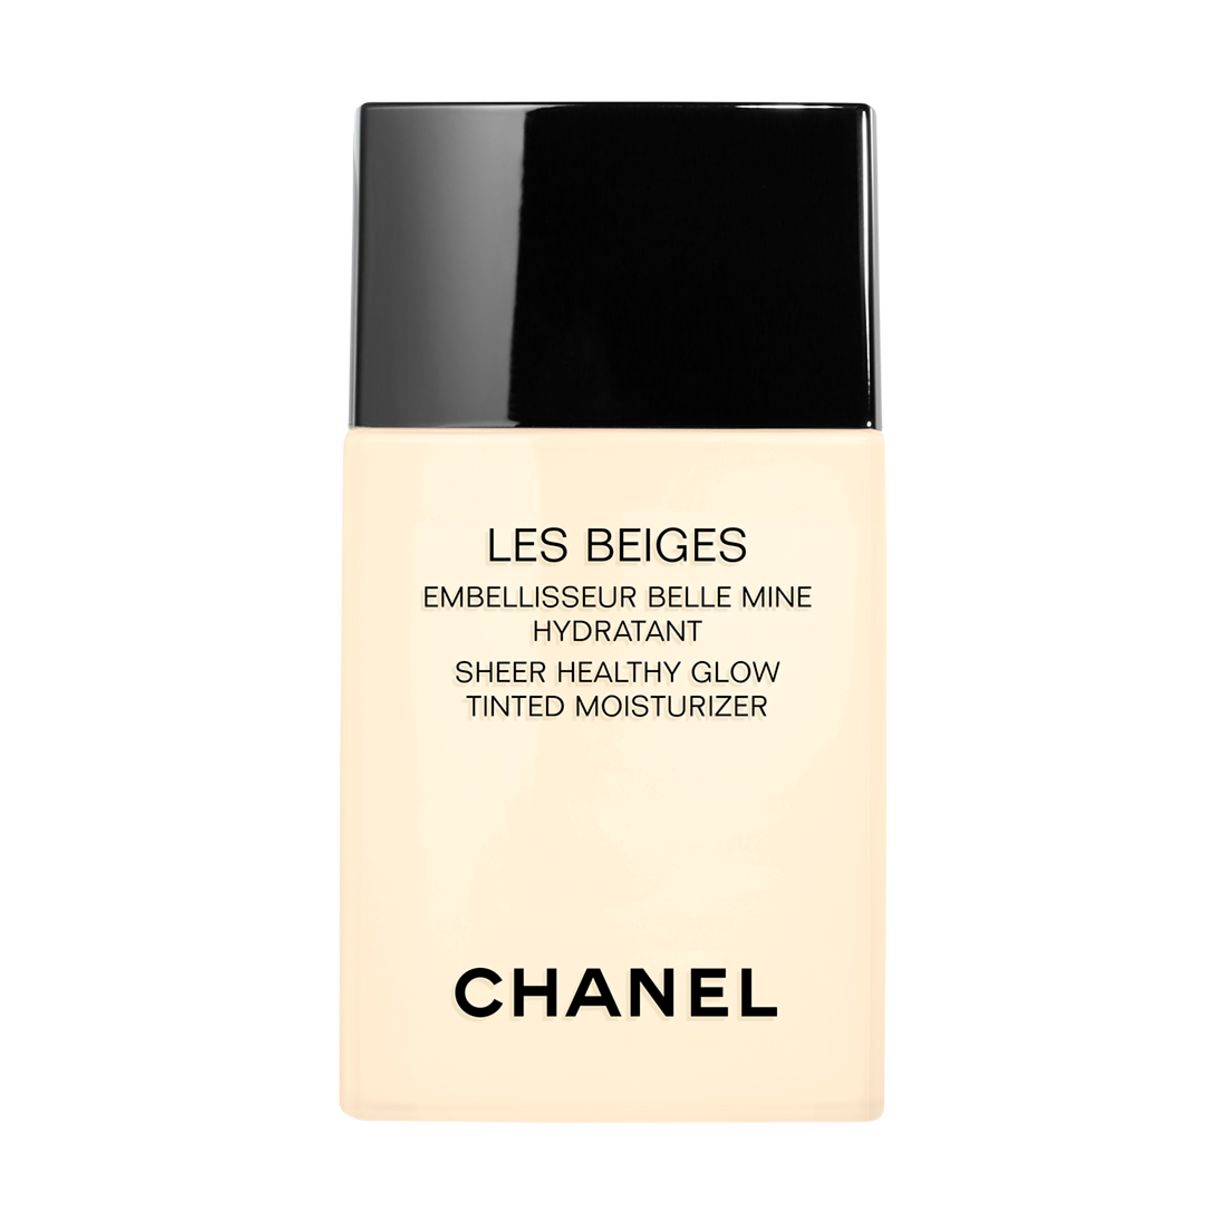 LES BEIGES SHEER HEALTHY GLOW TINTED MOISTURIZER